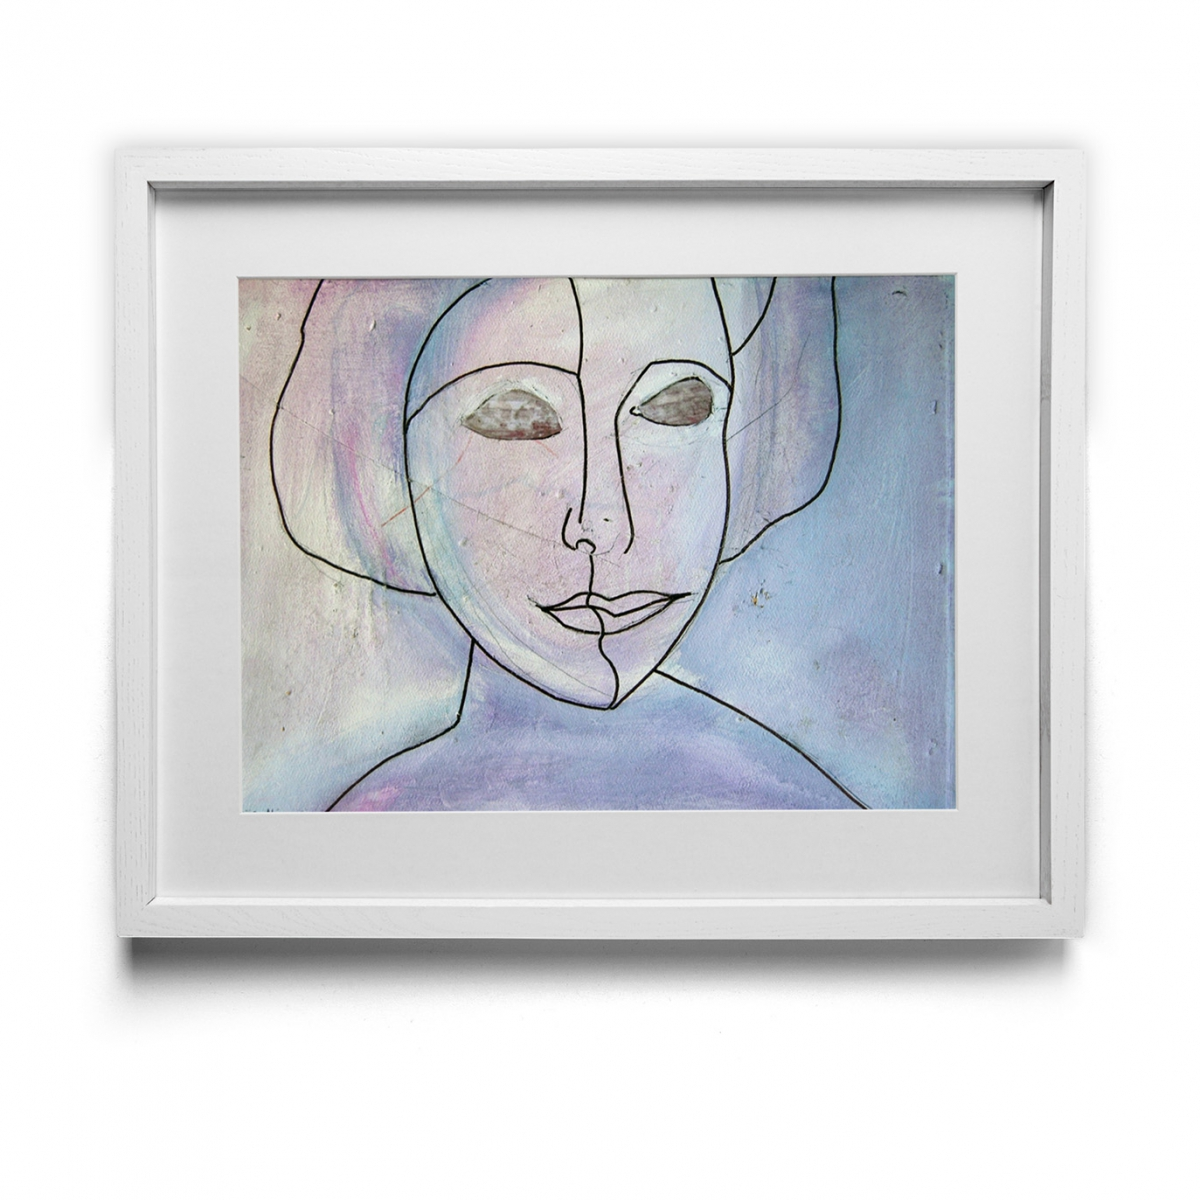 Anais Nin Oil on masonite 1985-1990